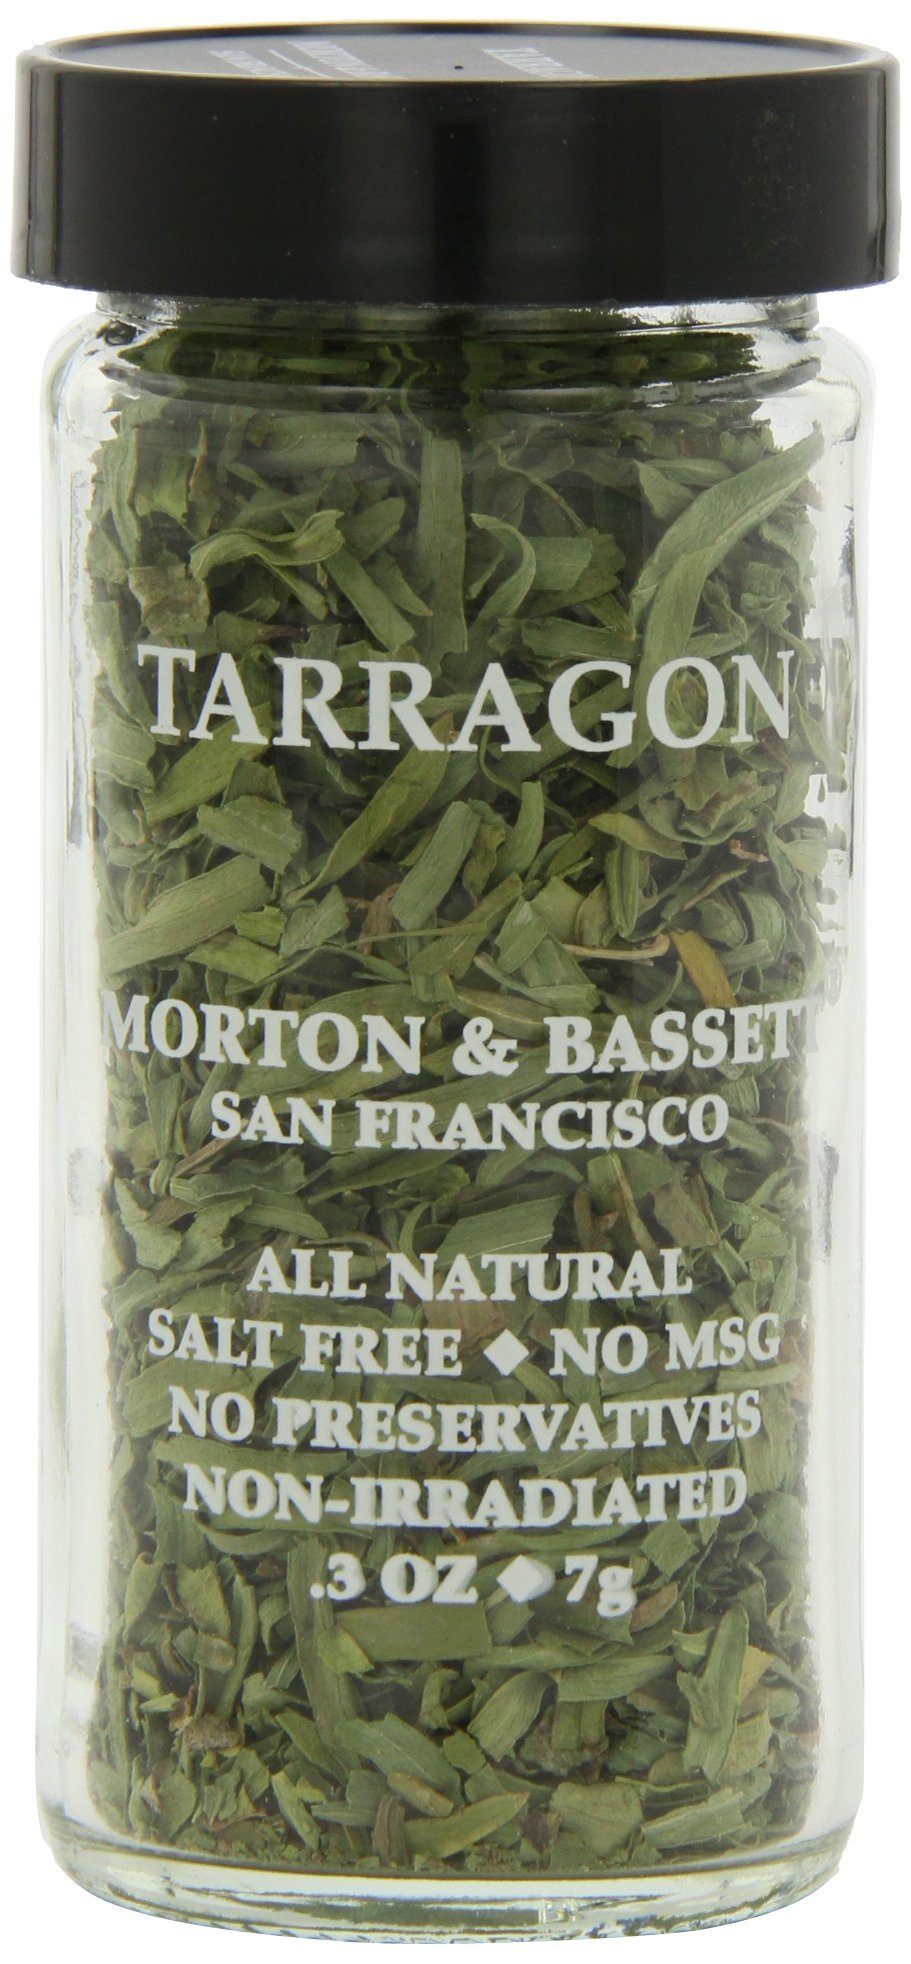 Morton & Basset Spices, Tarragon, 0.3 Ounce (Pack of 3)